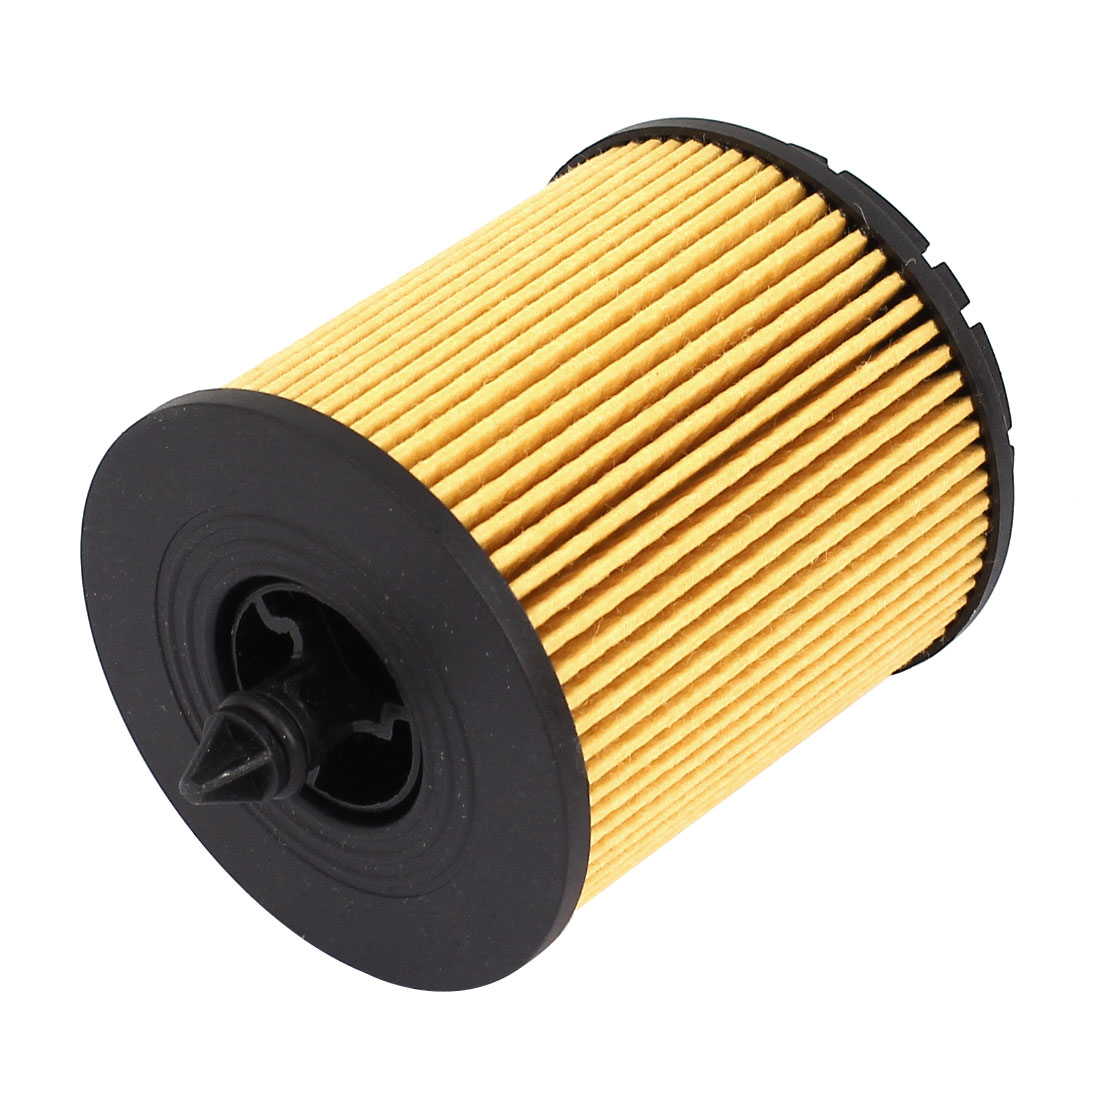 Automotive 2.0L 2.4L Diesel Engine Oil Filter for Buick Lacrosse 2010